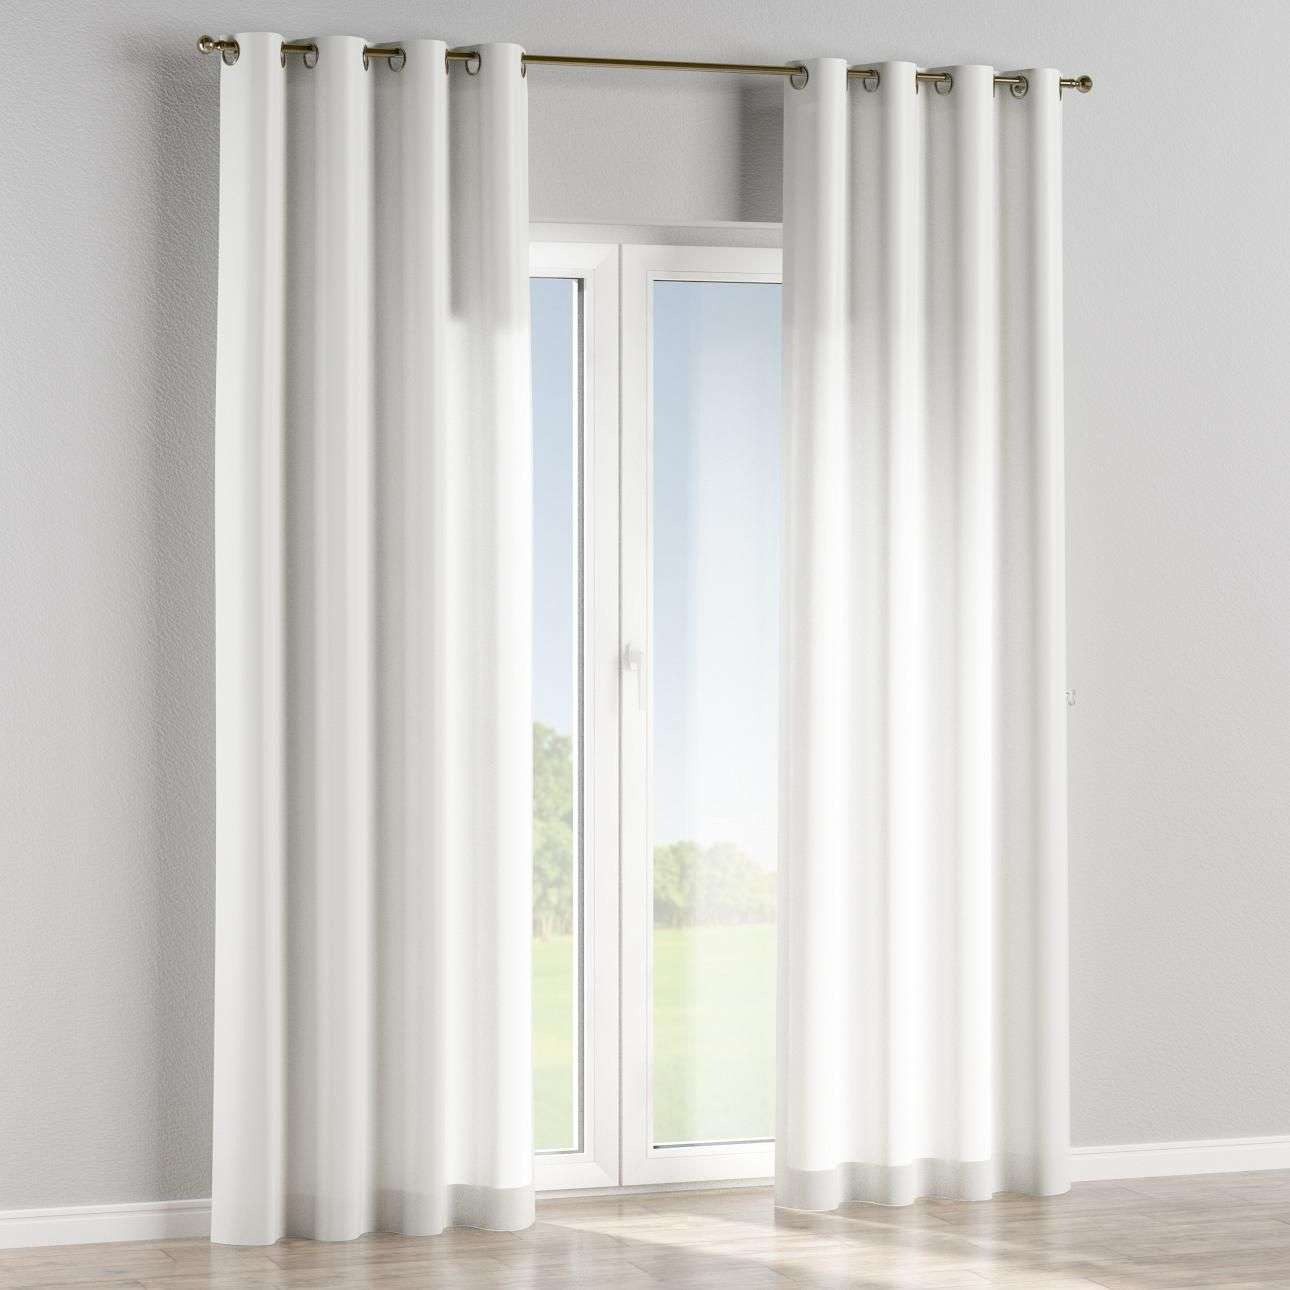 Eyelet lined curtains in collection Rustica, fabric: 138-12